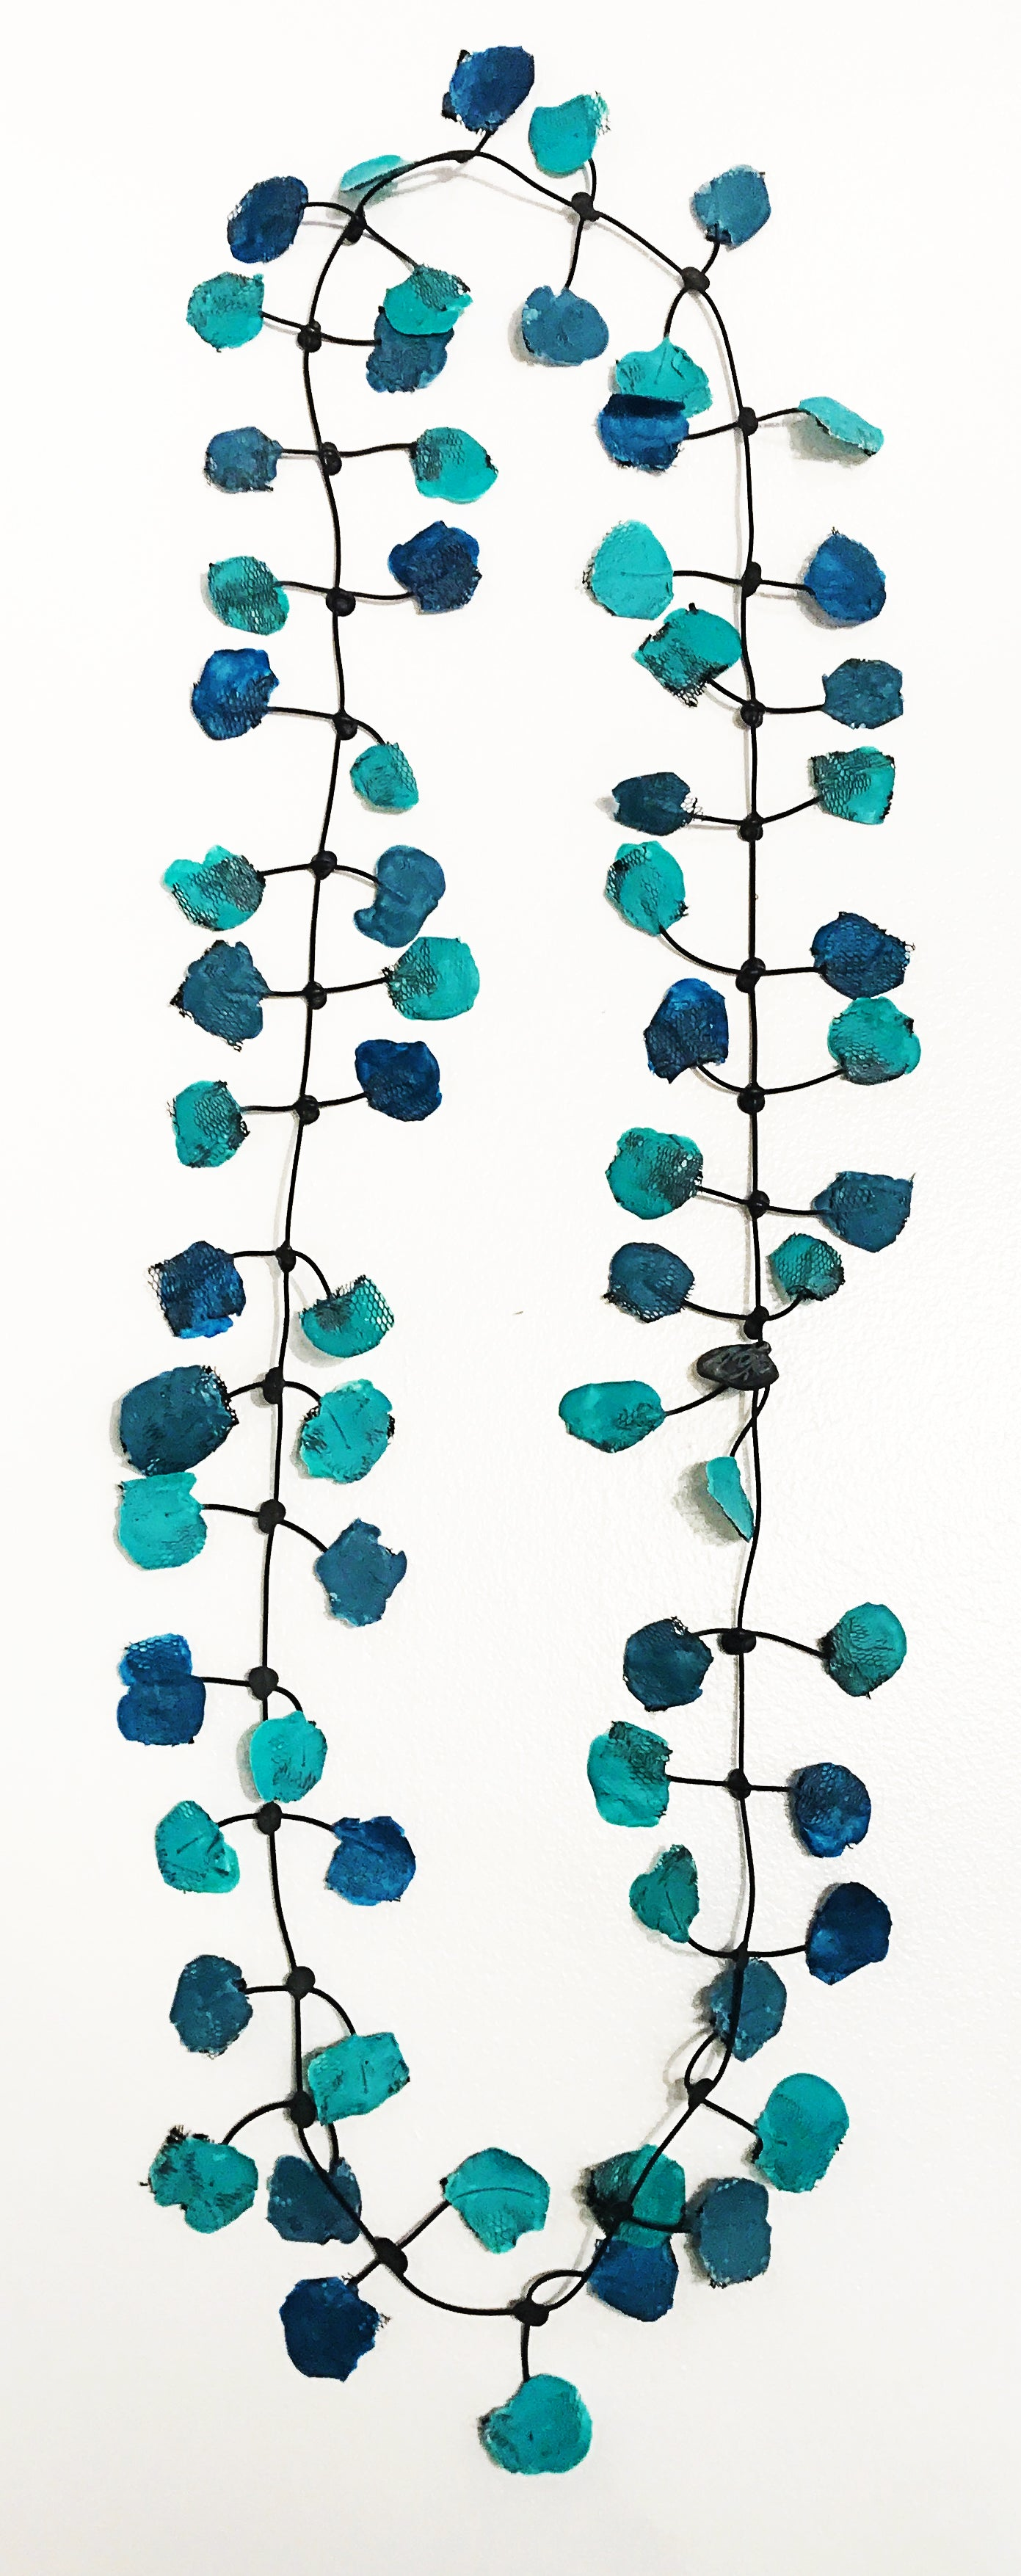 Annemieke Broenink Aquamarine Poppy Necklace